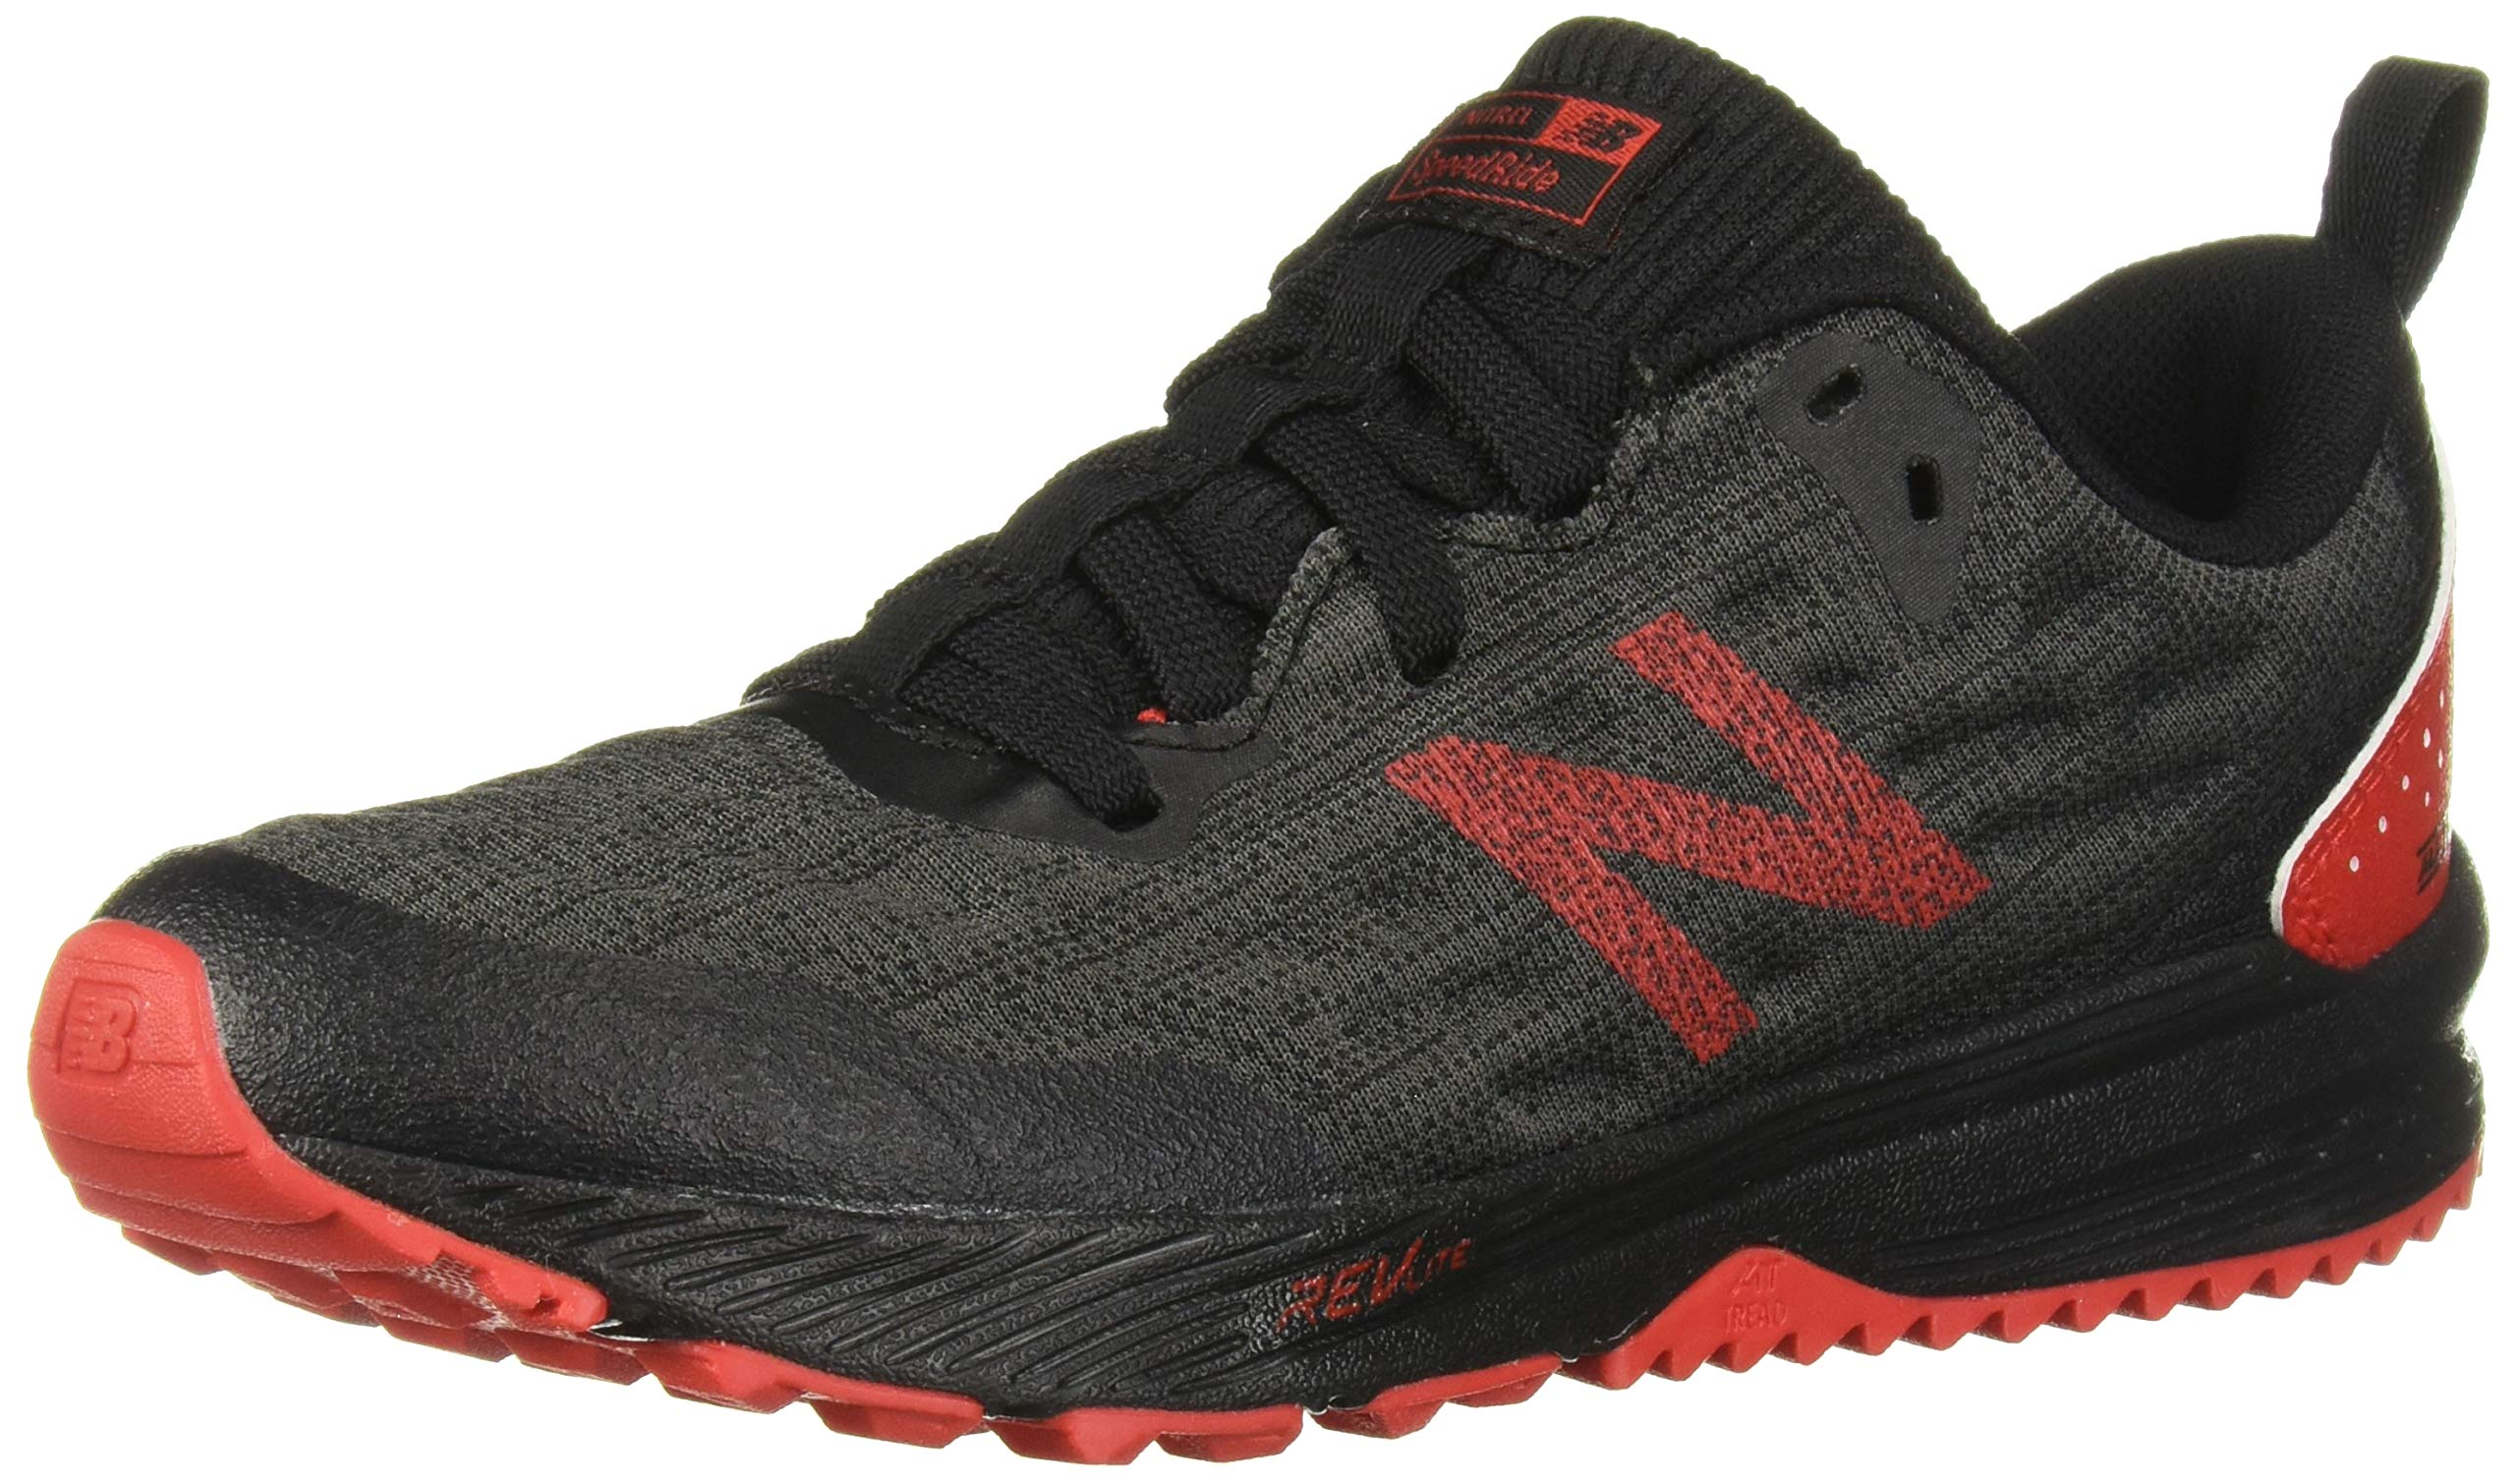 New Balance Boys' Nitrel V5 Running Shoe, Black/Phantom, 4.5 W US Big Kid